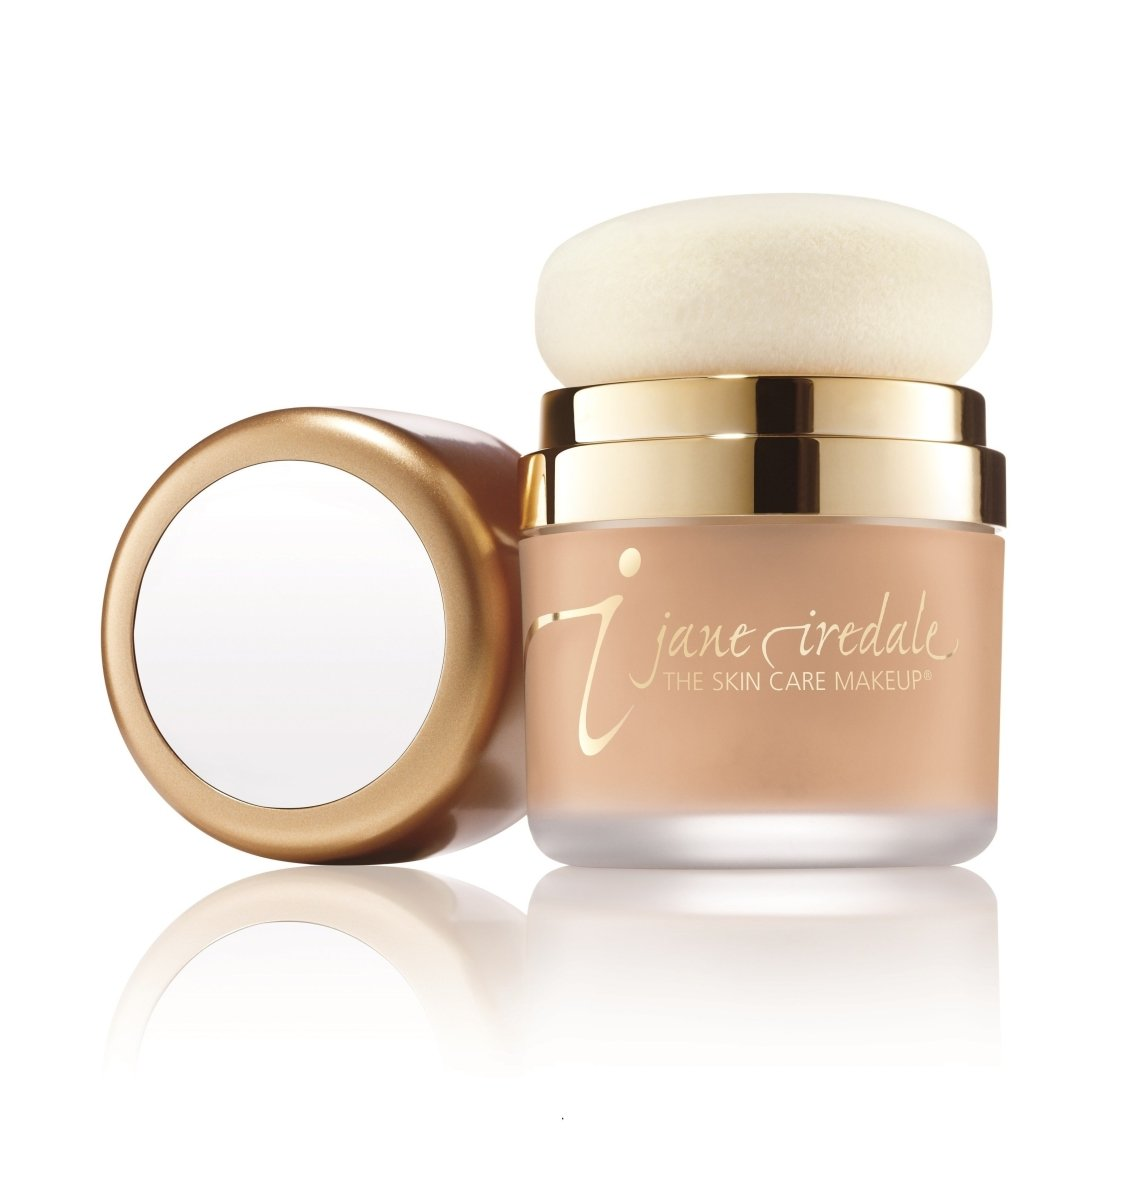 JANE IREDALE Powder-me Sponge 防曬粉專用粉撲帽 - MINT Organics